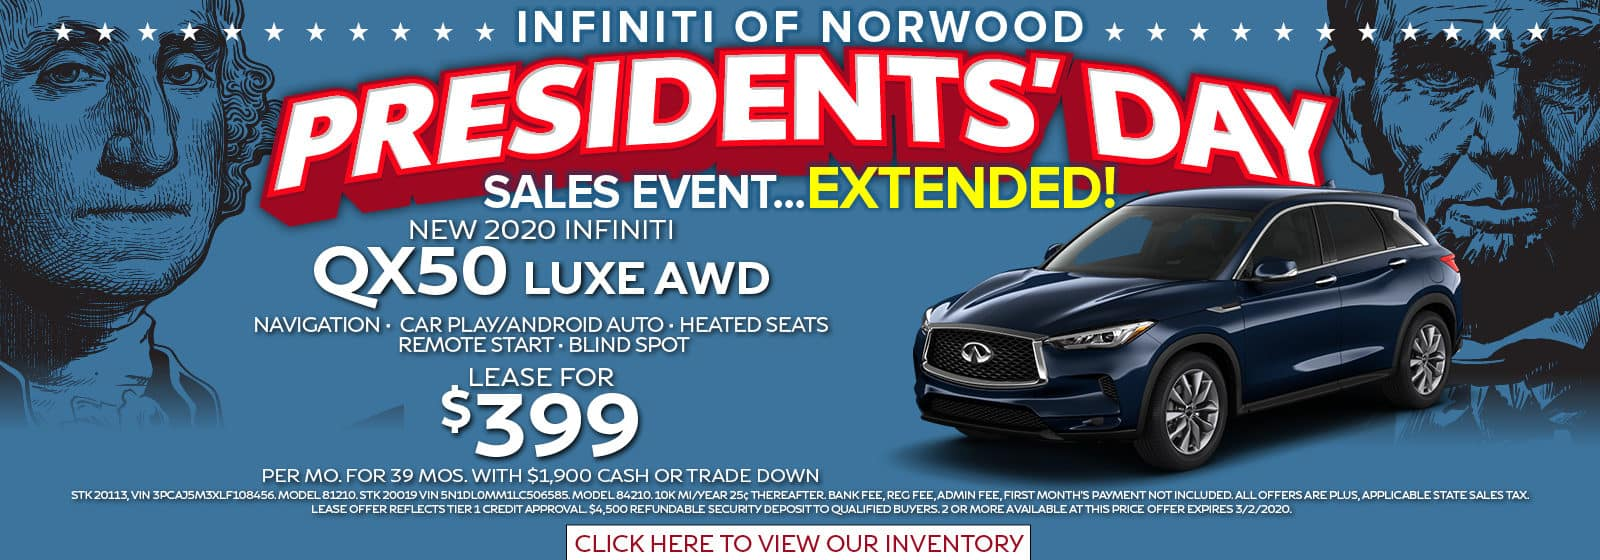 President's Day Sale Extended Lease a QX50 Luxe AWD for $399 per month